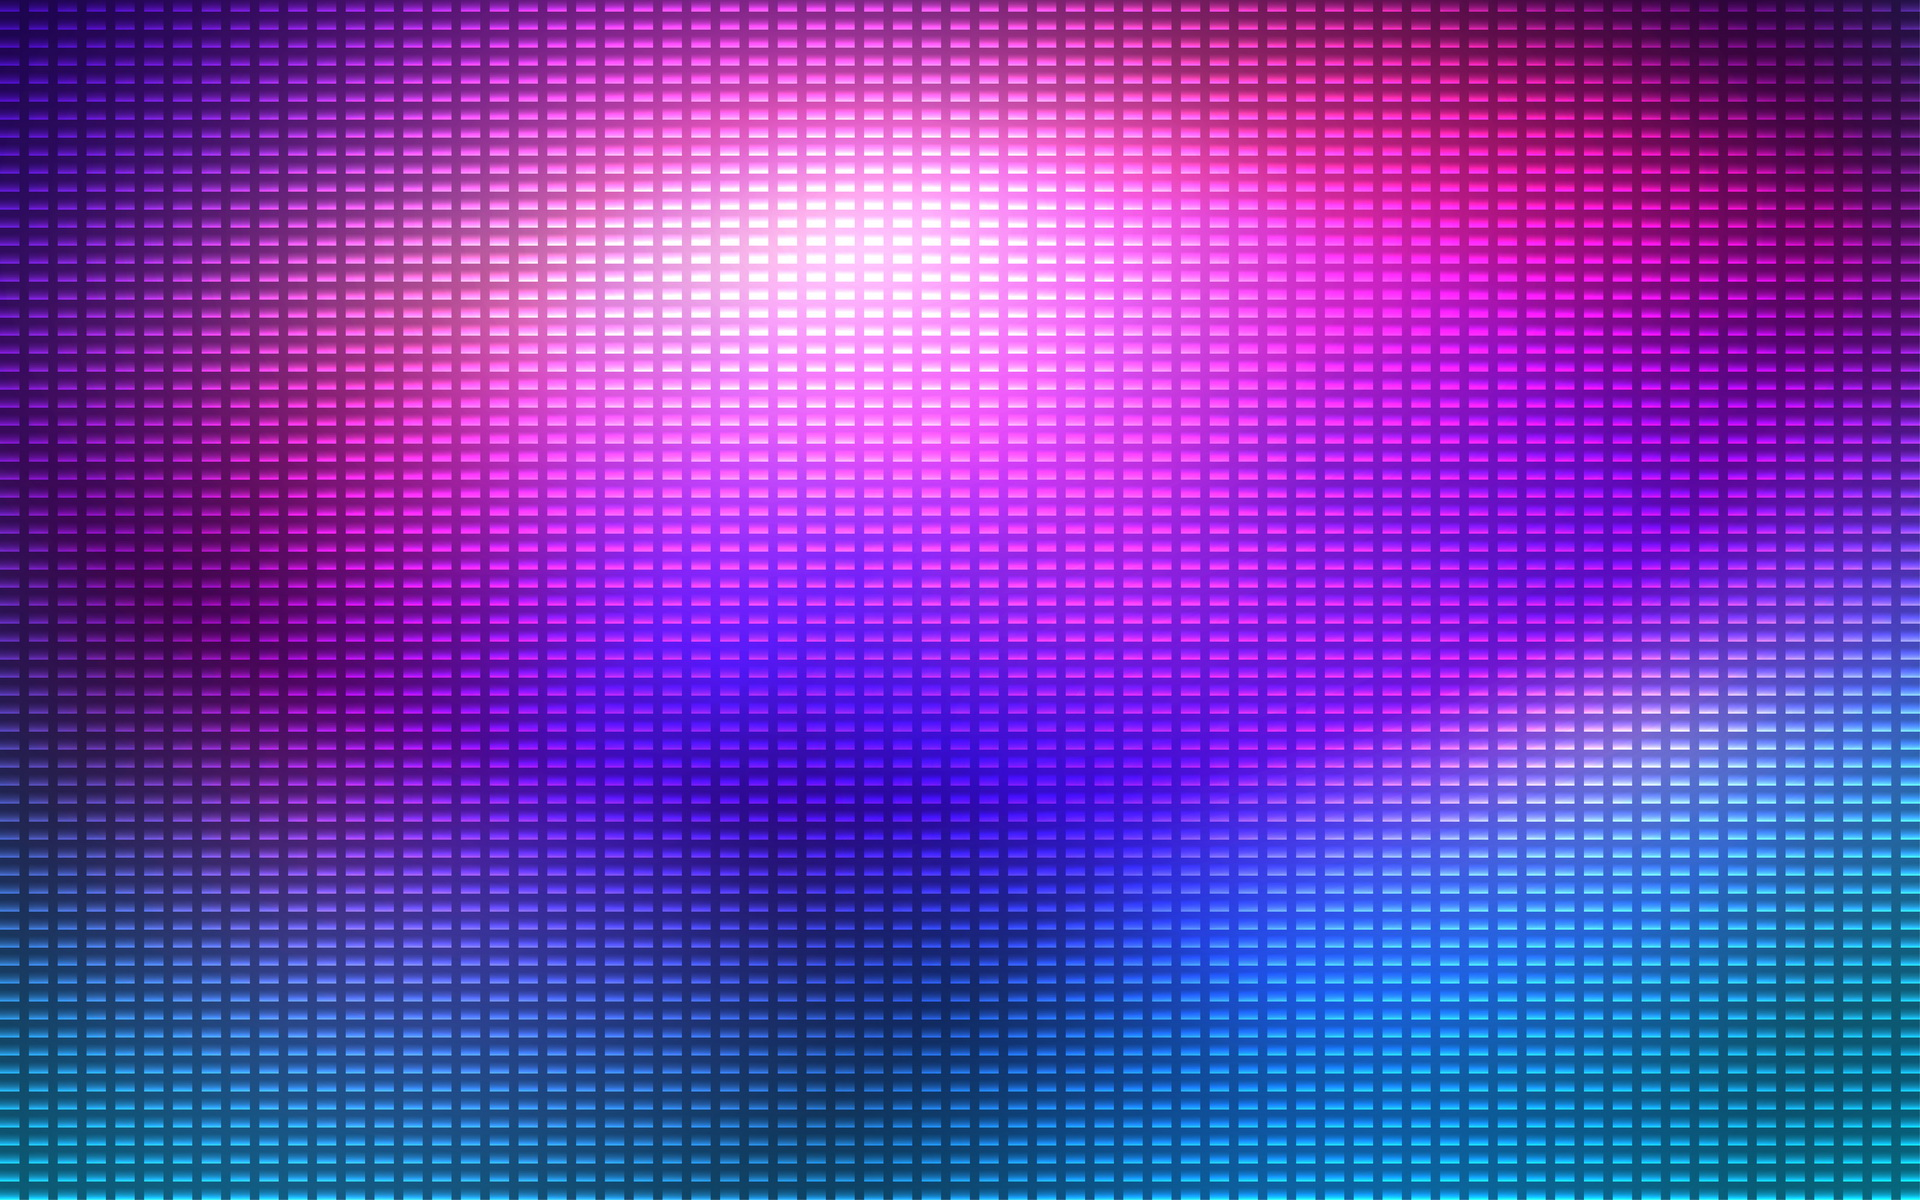 Purple Turquoise Full HD Wallpaper and Background Image